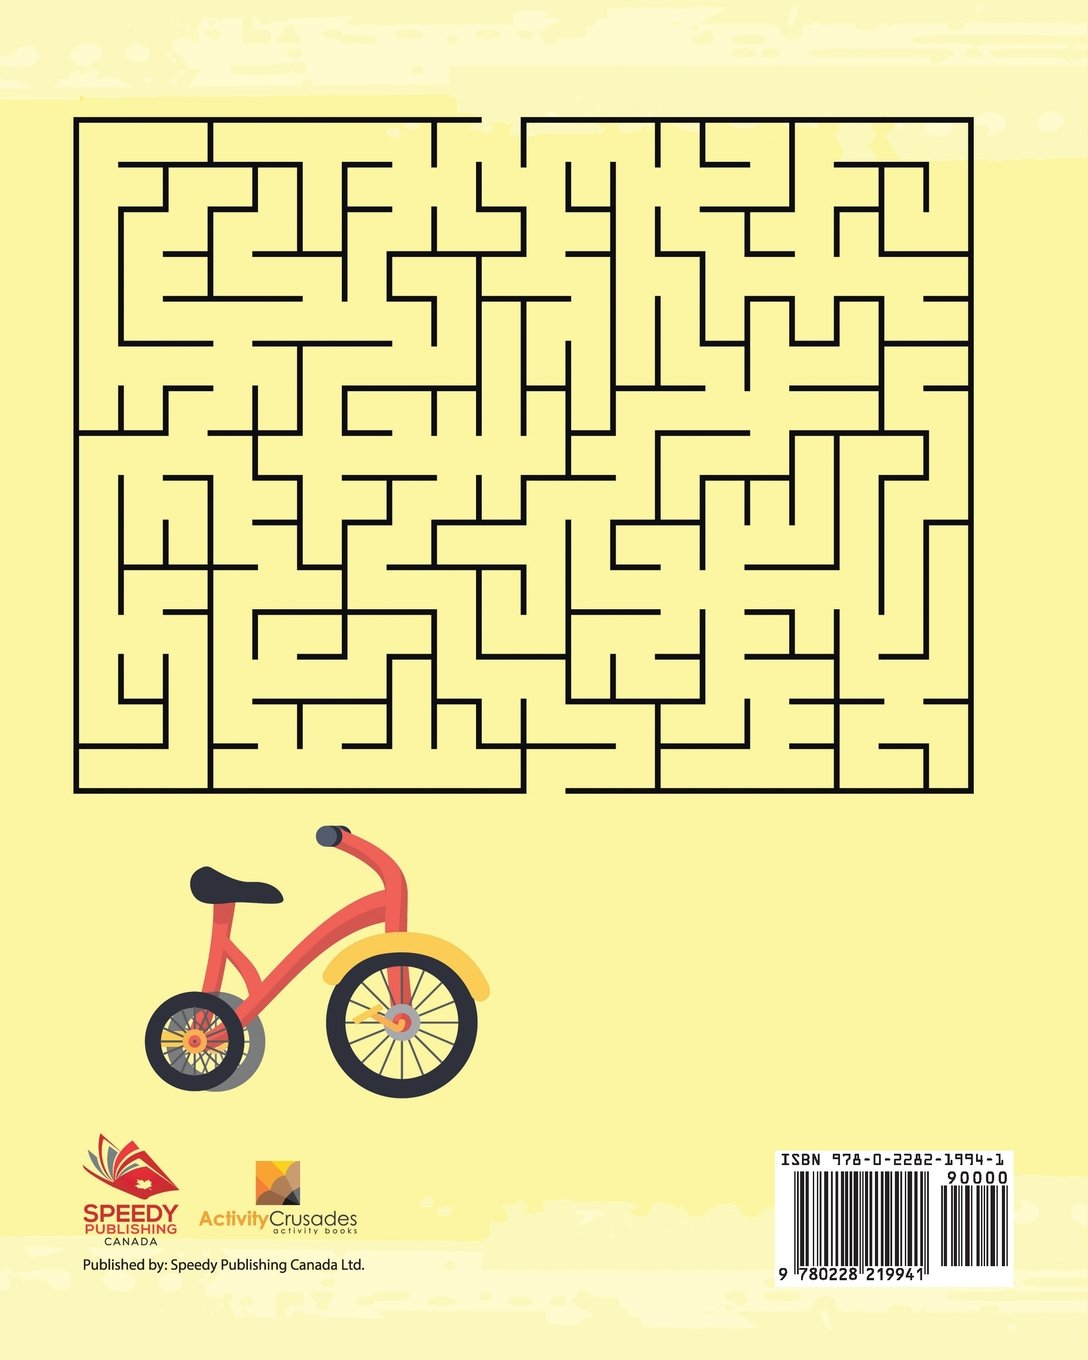 Juegos De Bicicleta : Laberintos Para Niños (Spanish Edition): Activity Crusades: 9780228219941: Amazon.com: Books